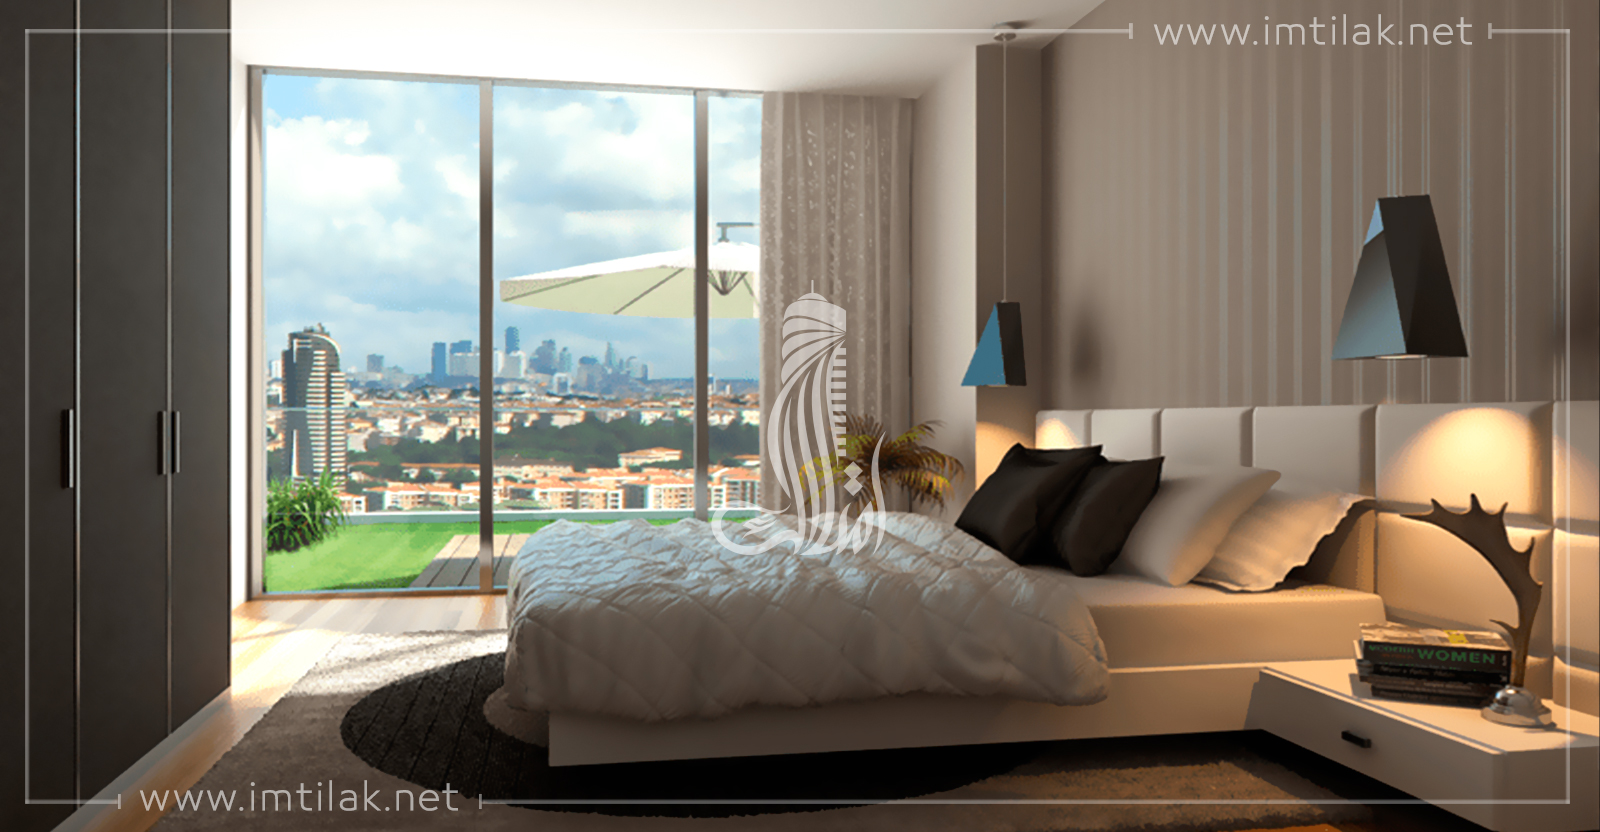 Apartments For Sale In Istanbul Asian Side- Istanbul Project IMT - 413